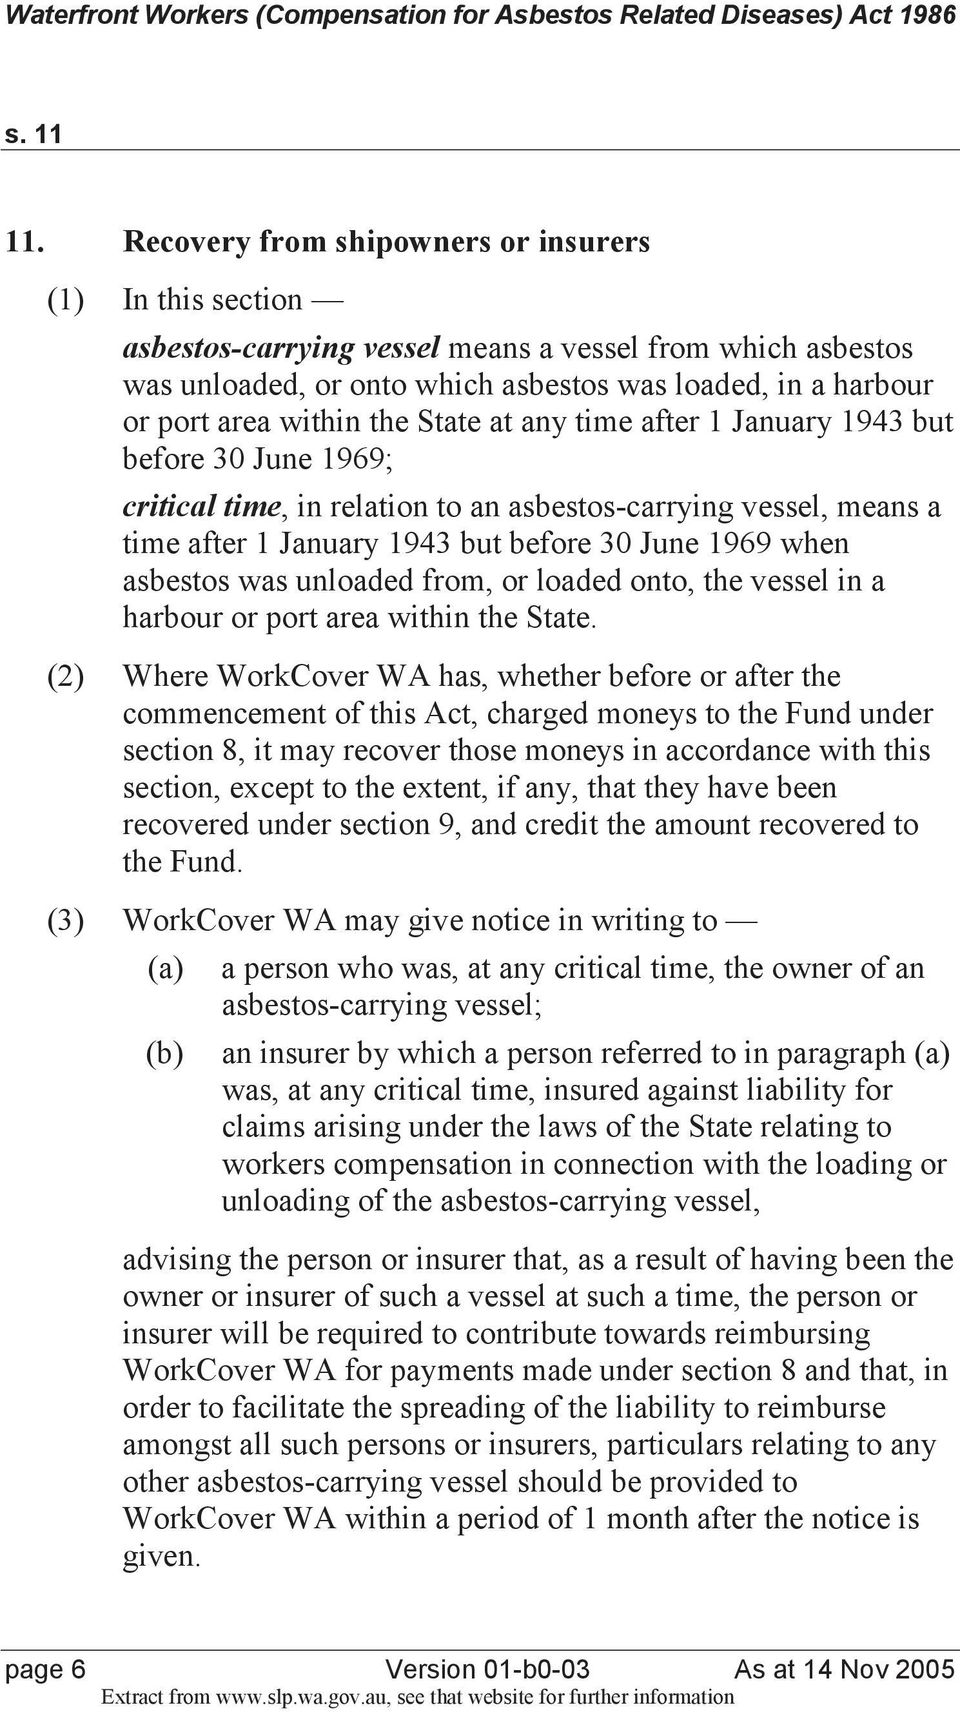 the State at any time after 1 January 1943 but before 30 June 1969; critical time, in relation to an asbestos-carrying vessel, means a time after 1 January 1943 but before 30 June 1969 when asbestos